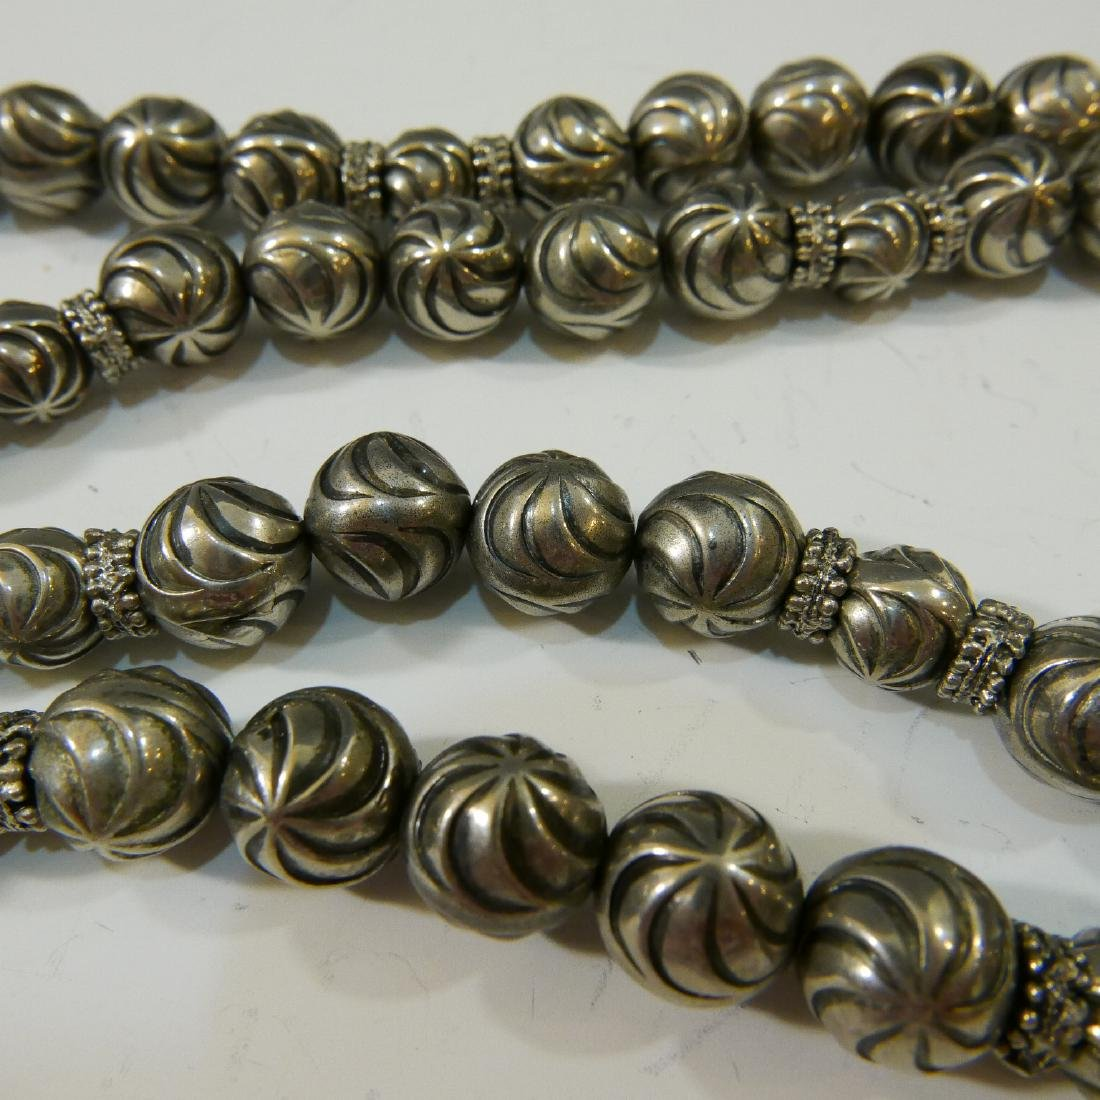 STERLING SILVER BEADS NECKLACE - 4